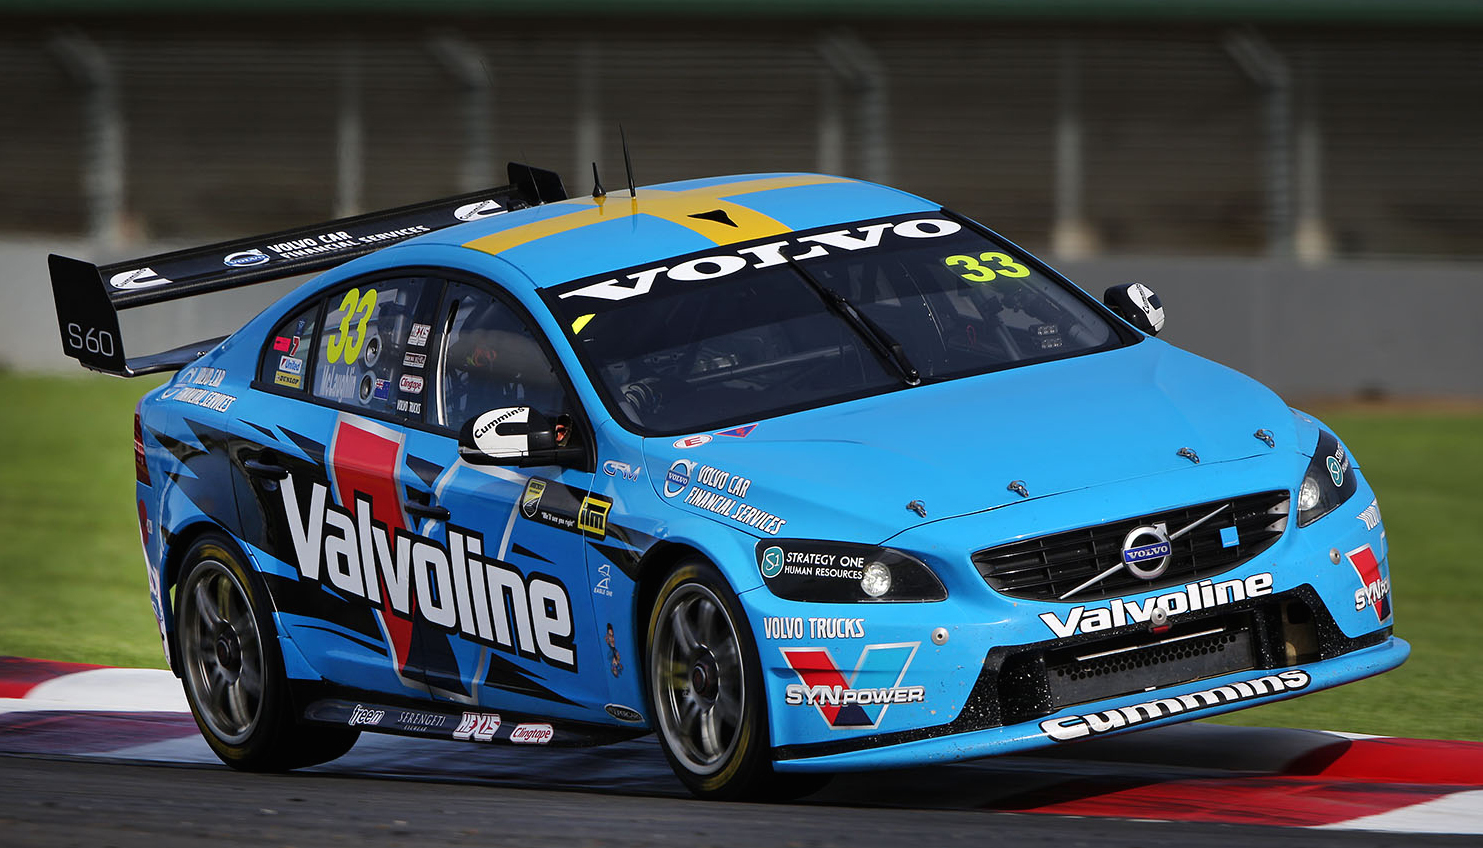 Volvo S60 sales boosted by V8 Supercars entry, says company - Photos (1 of 3)